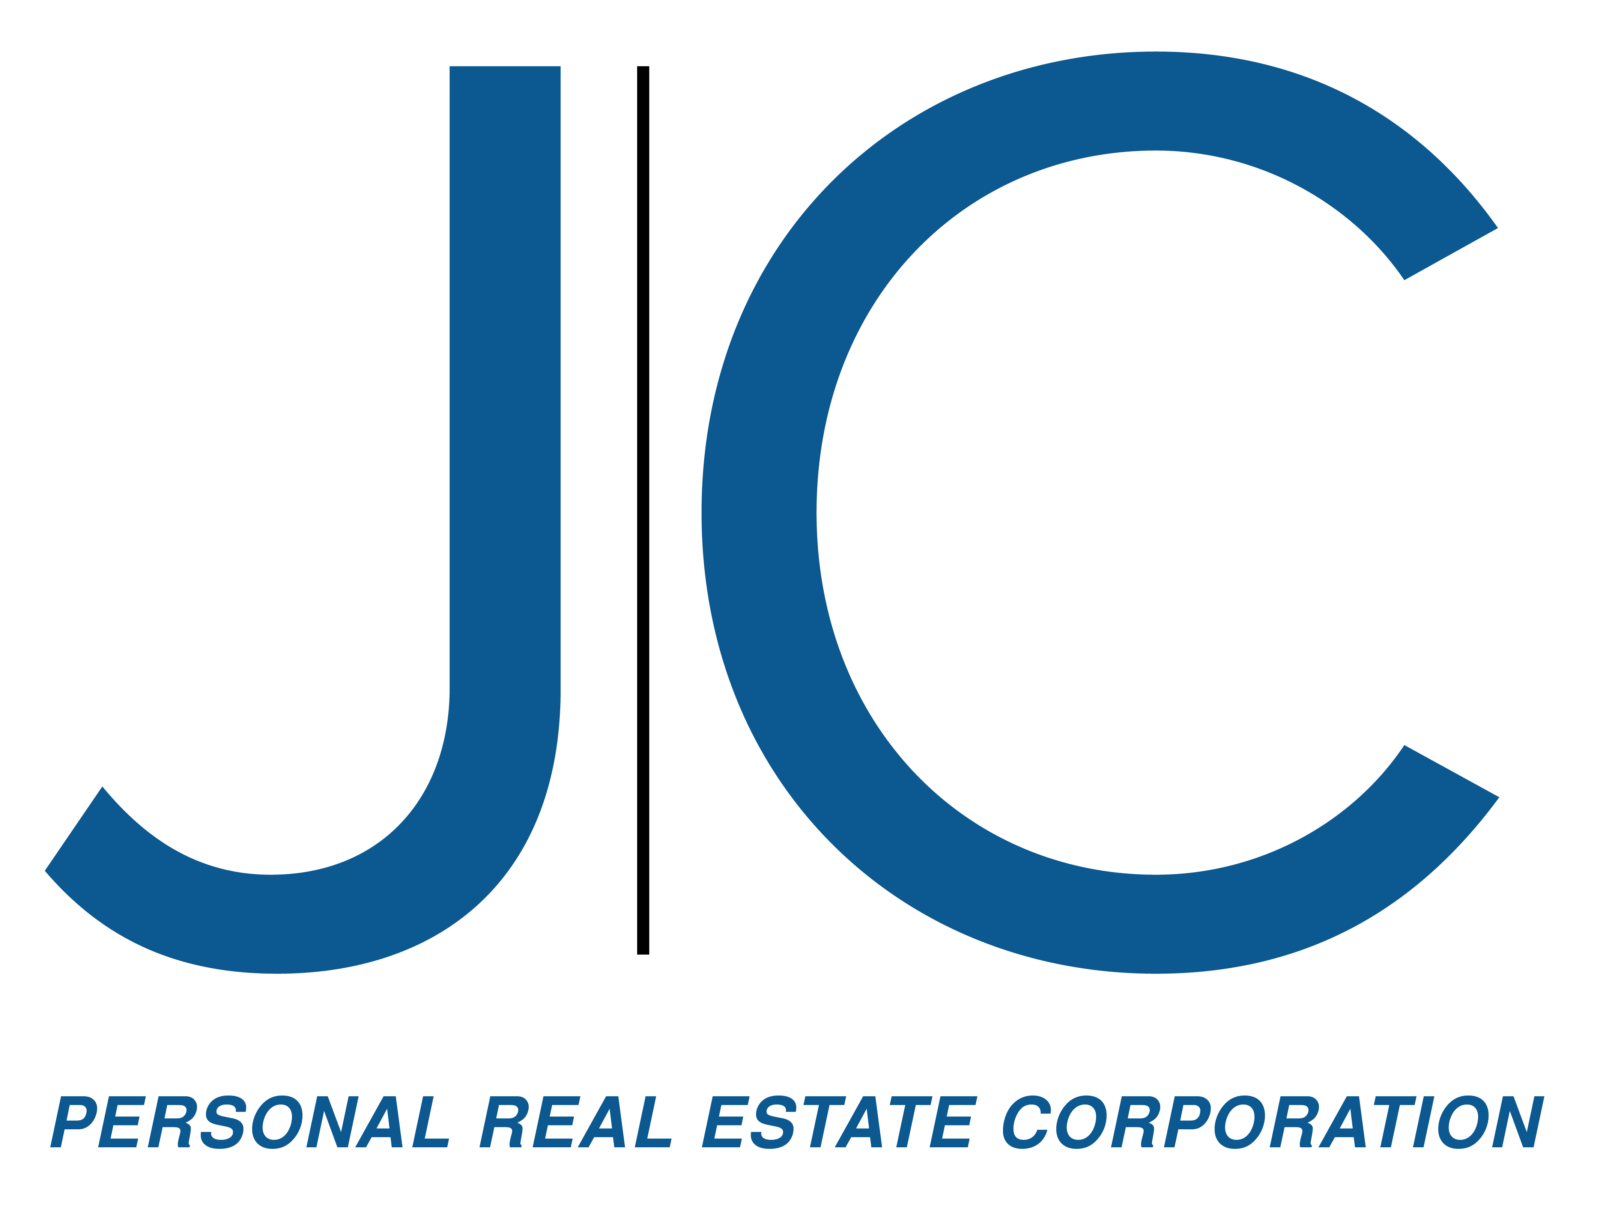 Joseph Collins, Personal Real Estate Corporation